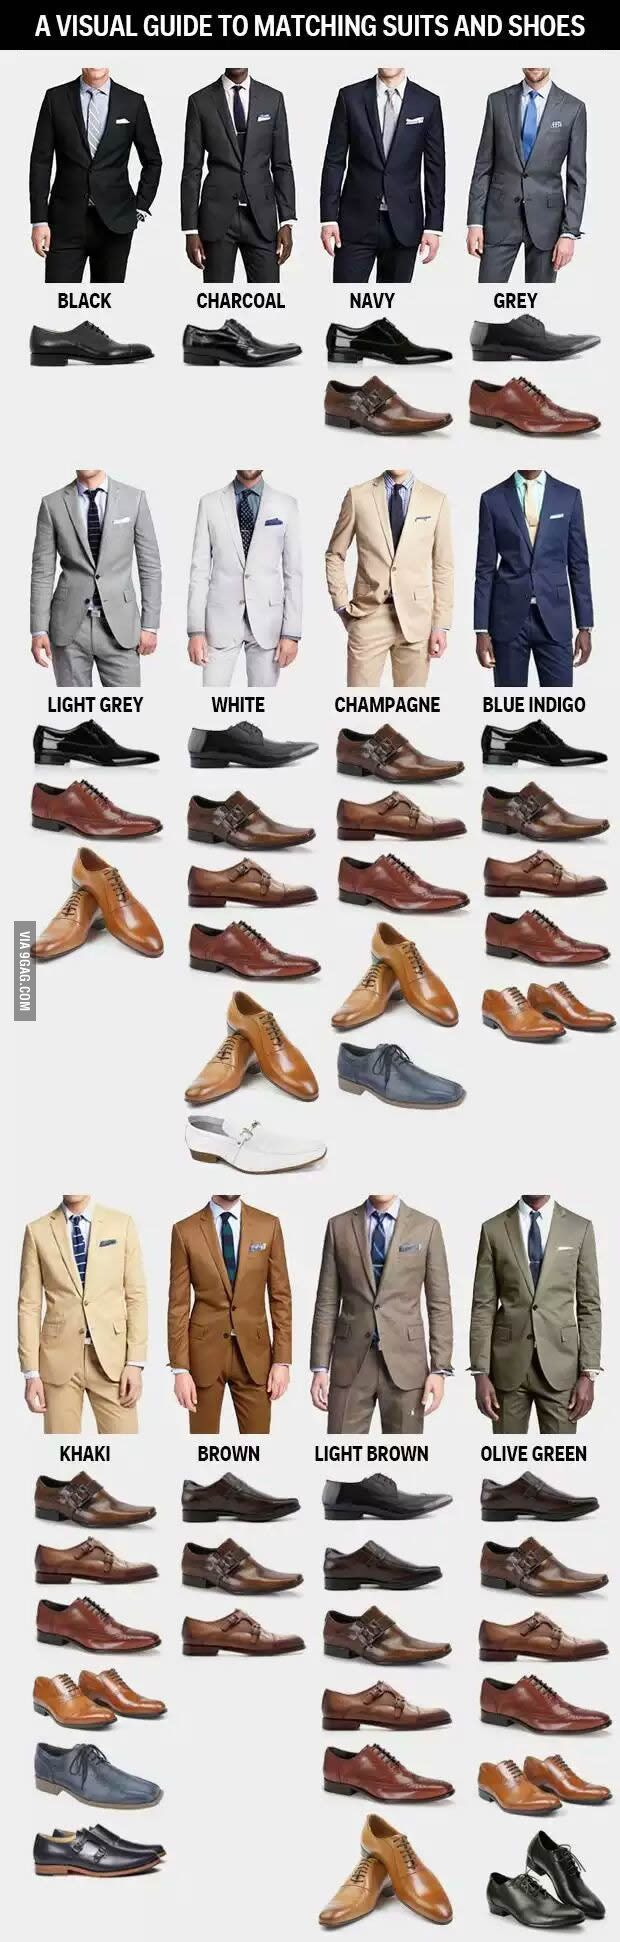 A visual guide to match suits and shoes